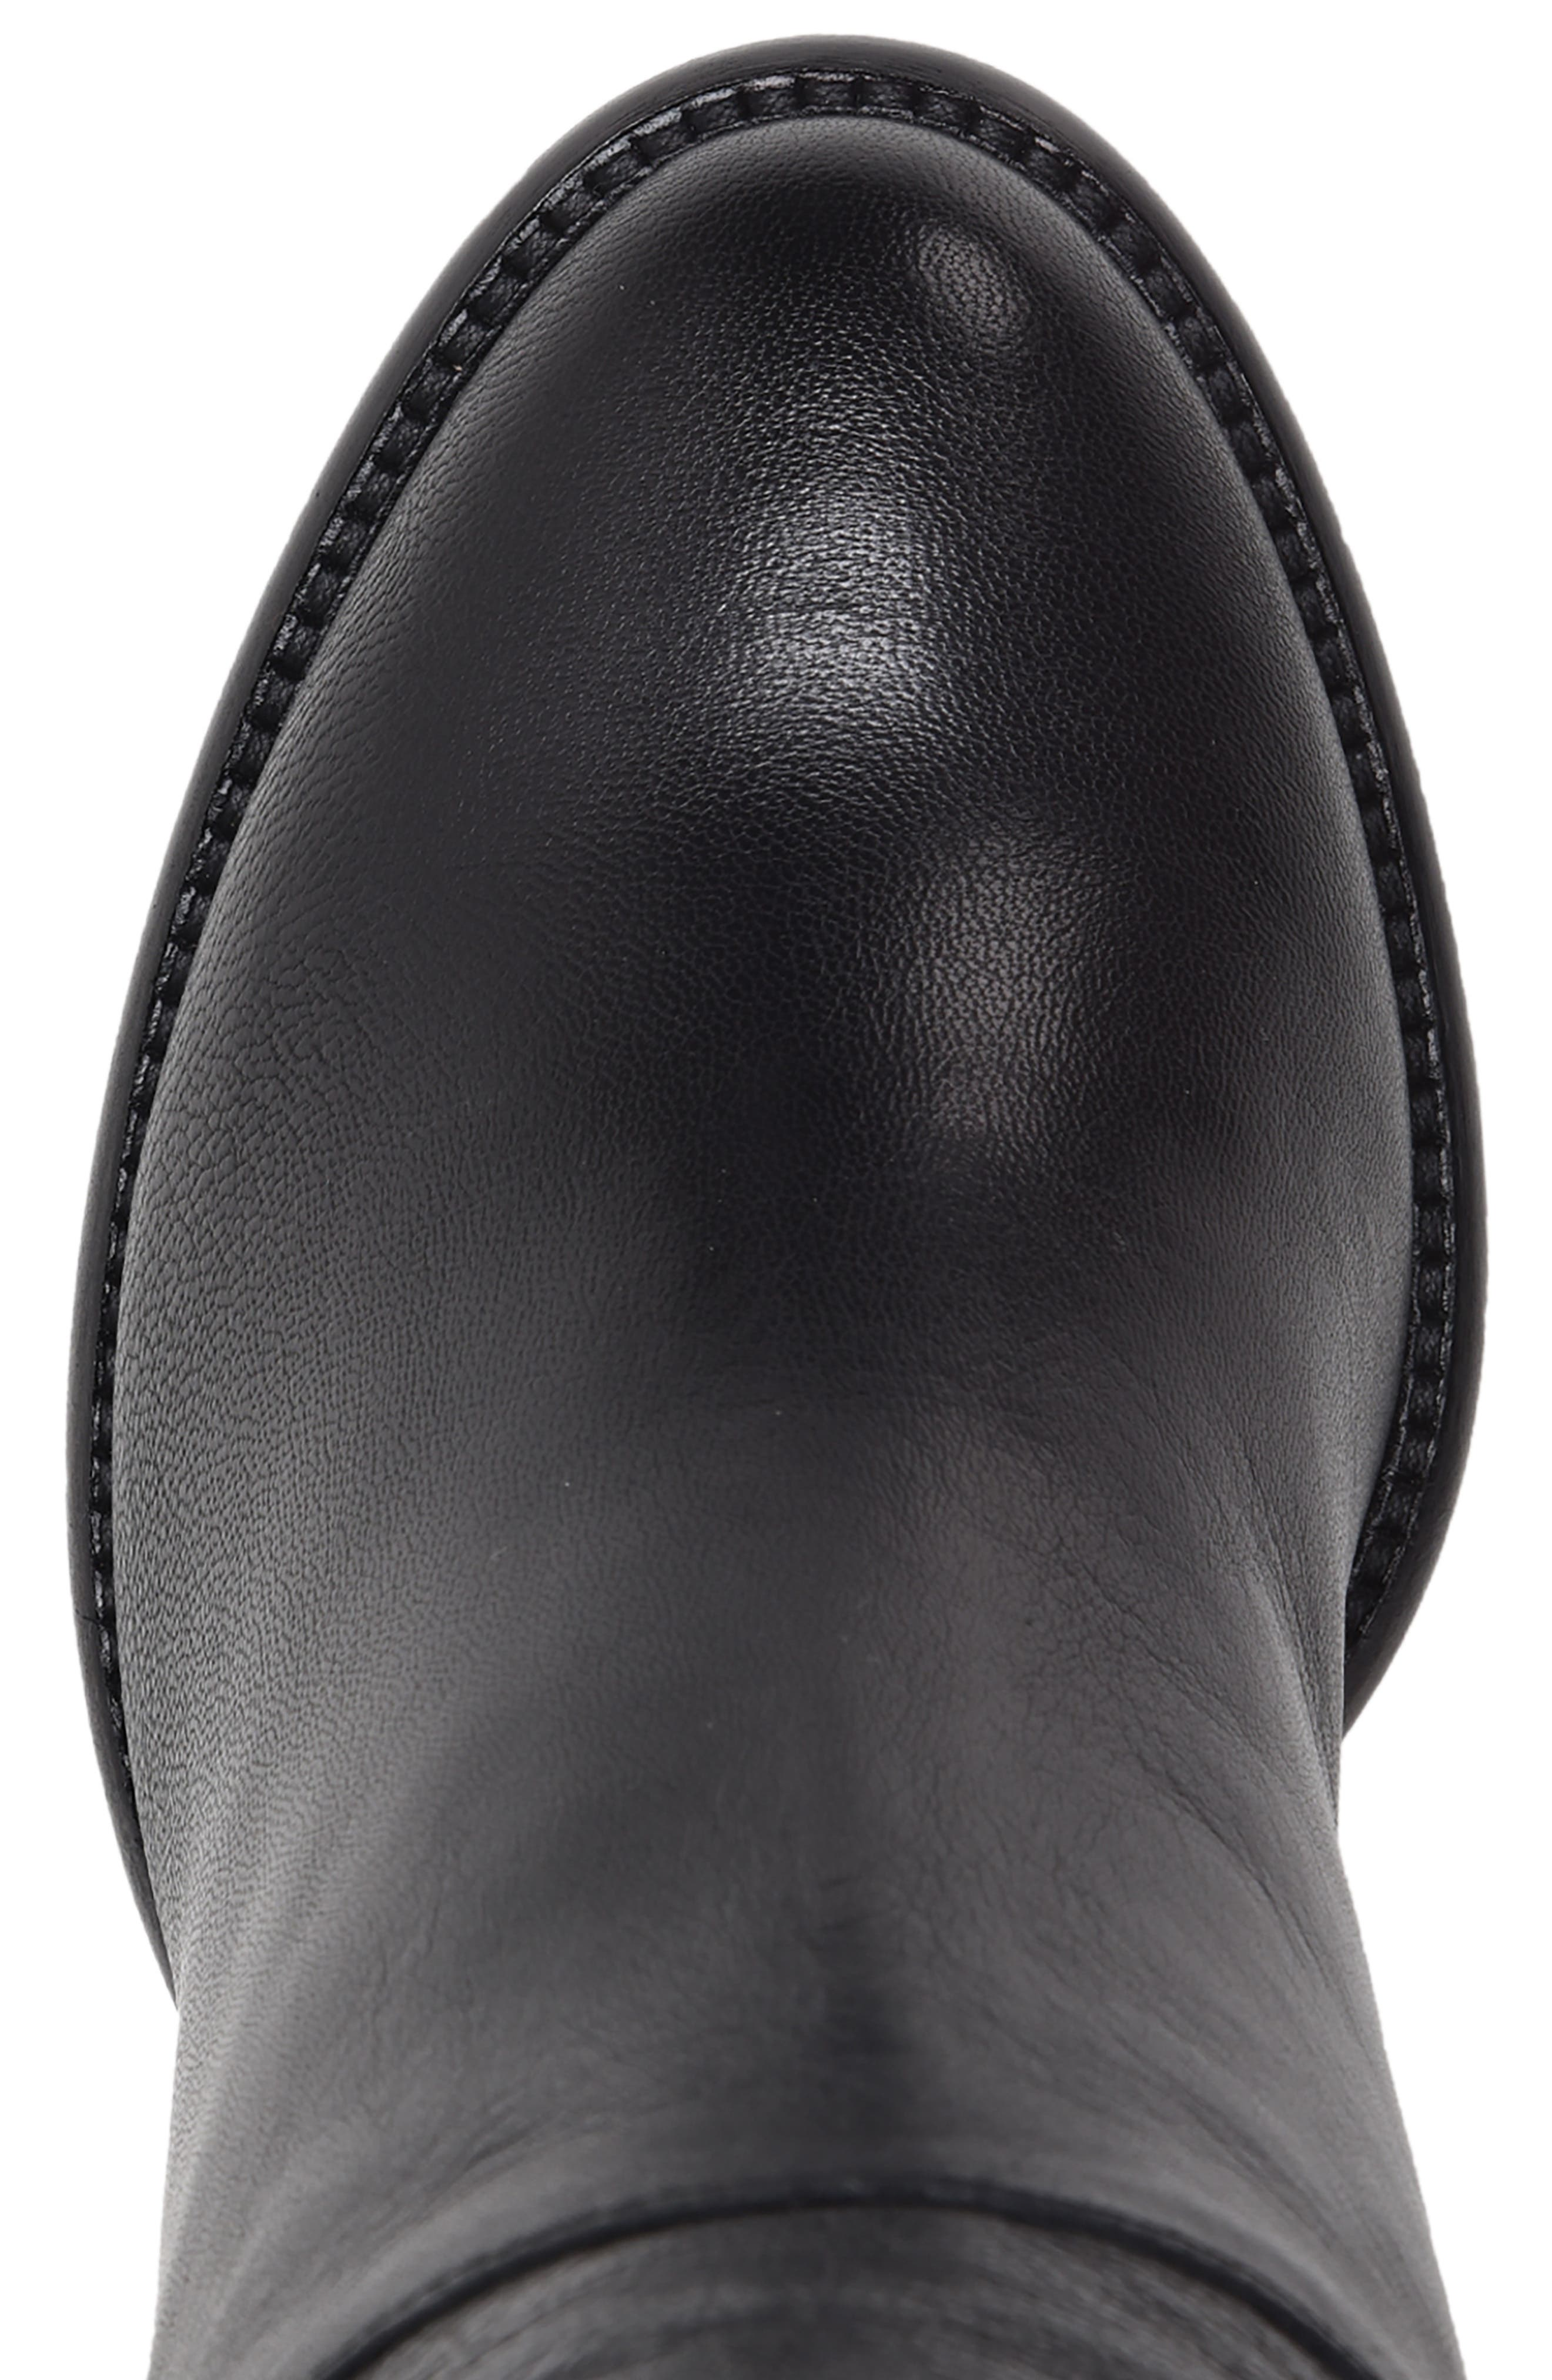 Michela SP Waterproof Genuine Shearling Lined Boot,                             Alternate thumbnail 4, color,                             BLACK METALLIC LEATHER